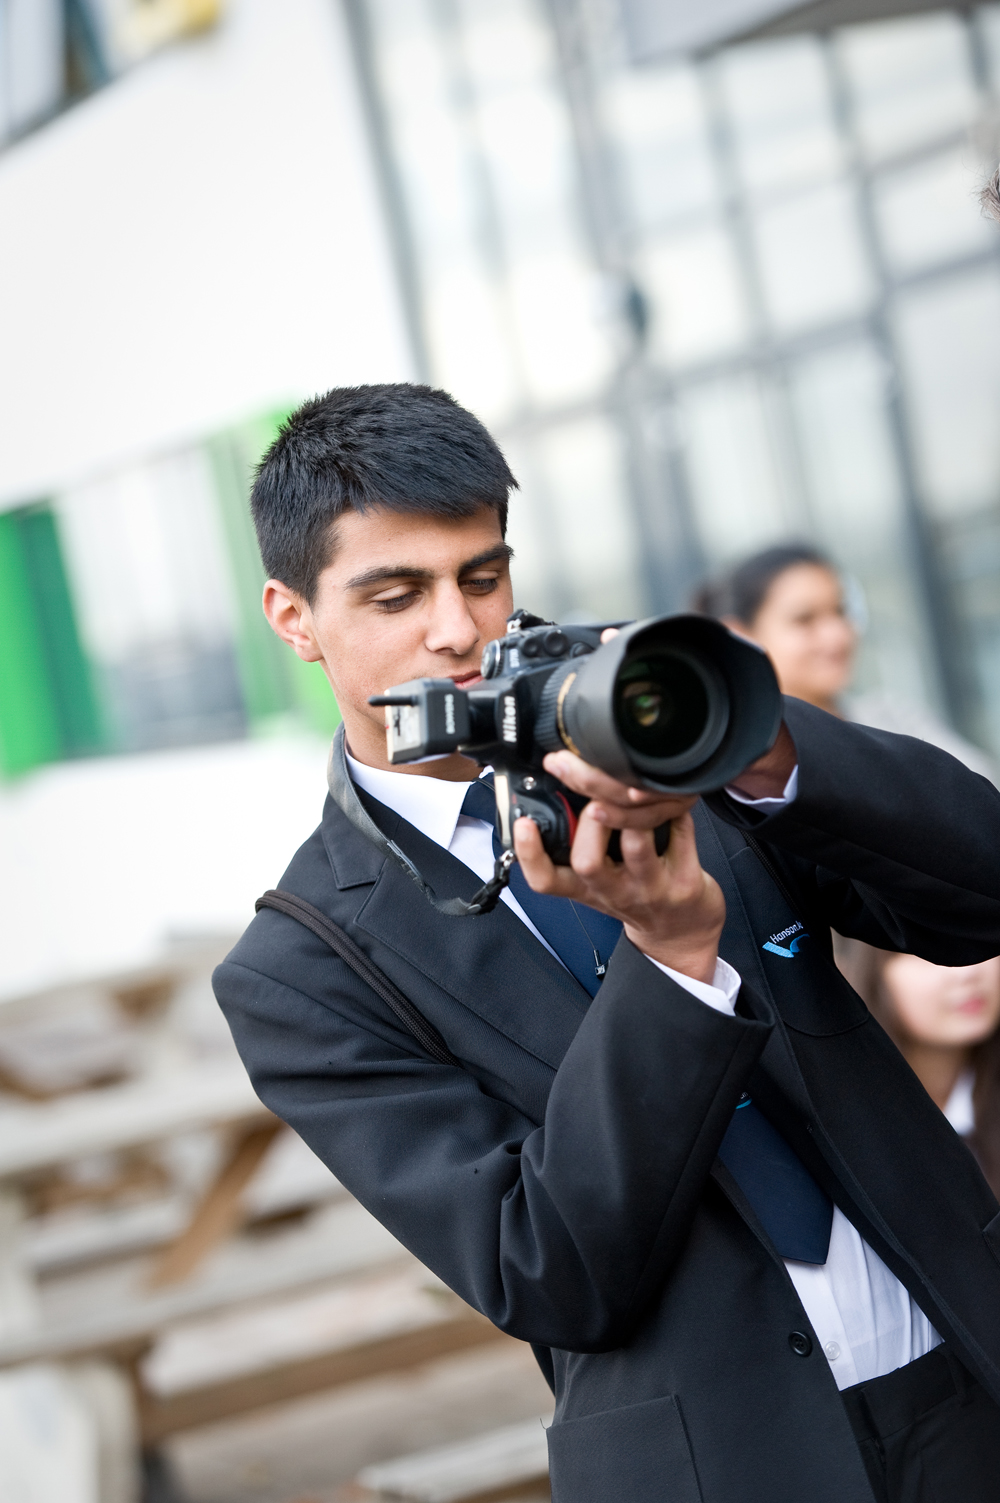 Student taking part in photography workshop